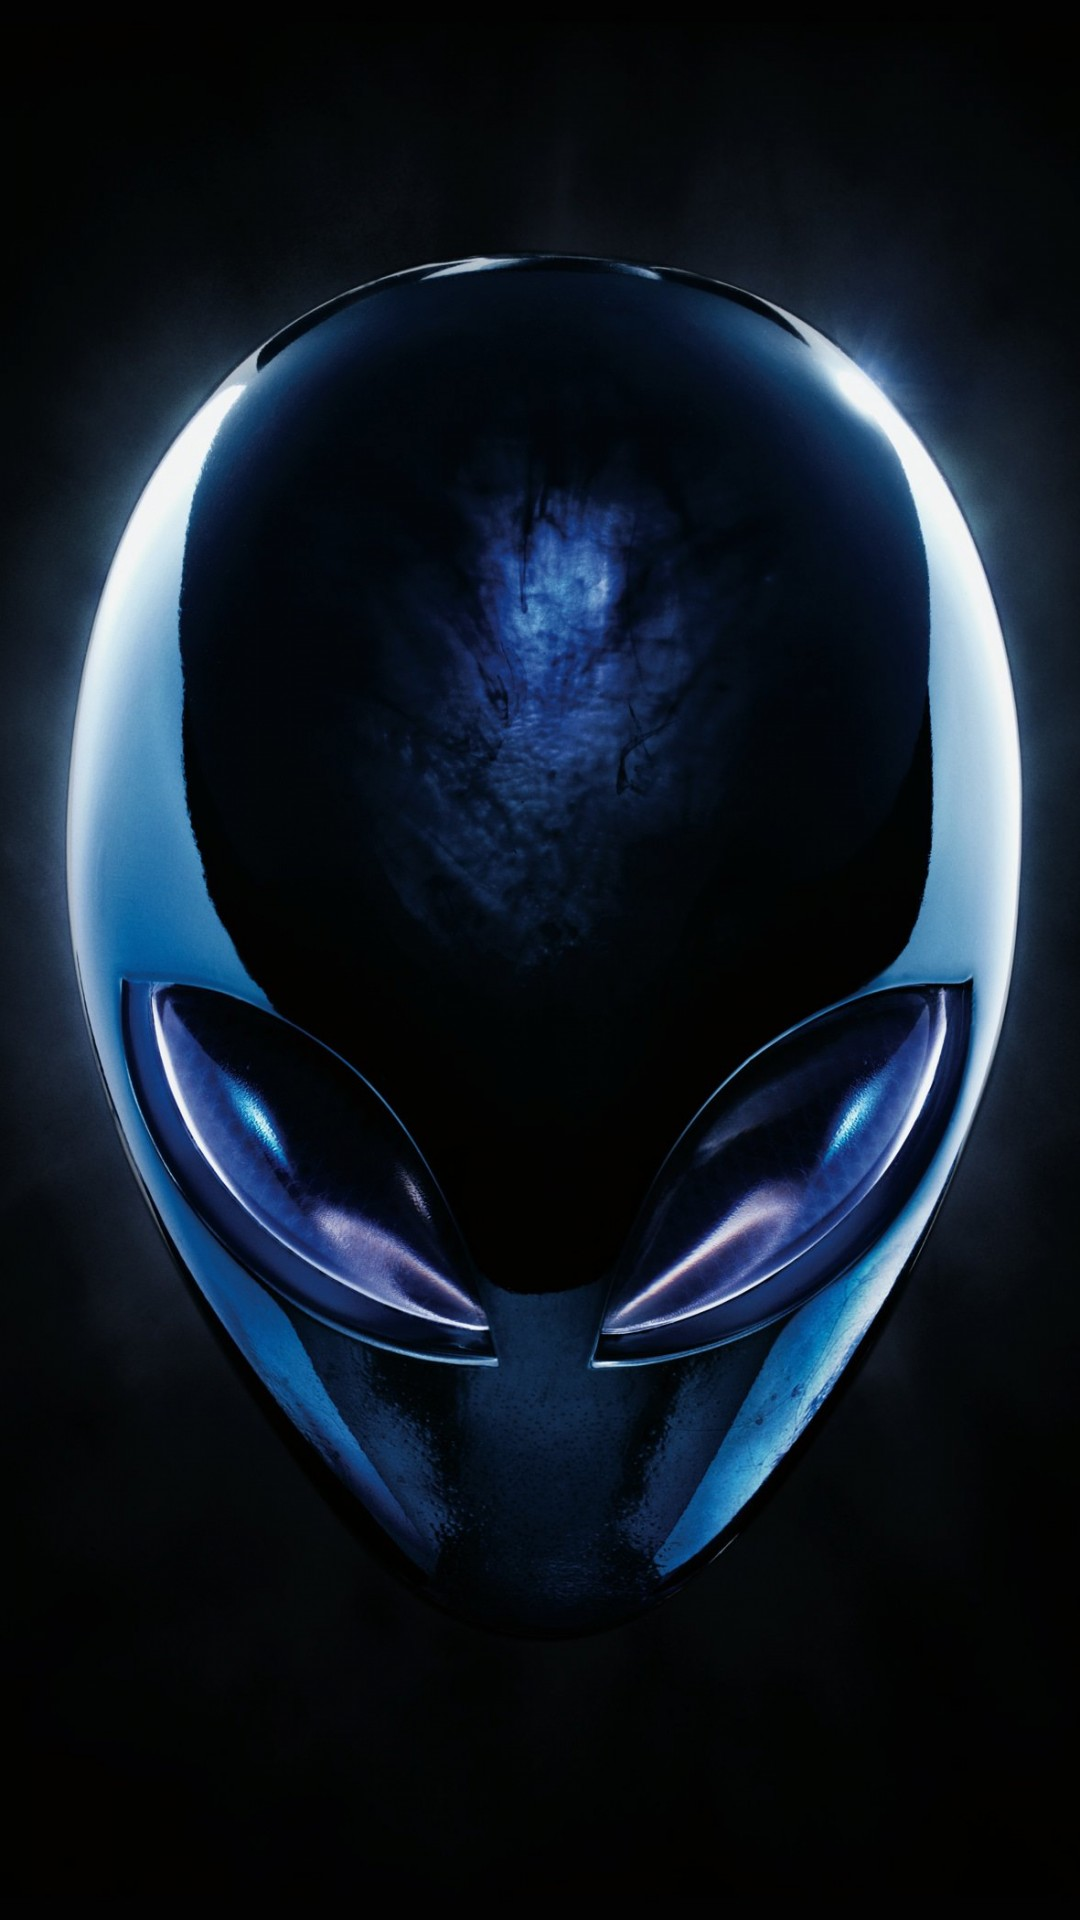 Alienware Blue Logo Wallpaper for SAMSUNG Galaxy S4